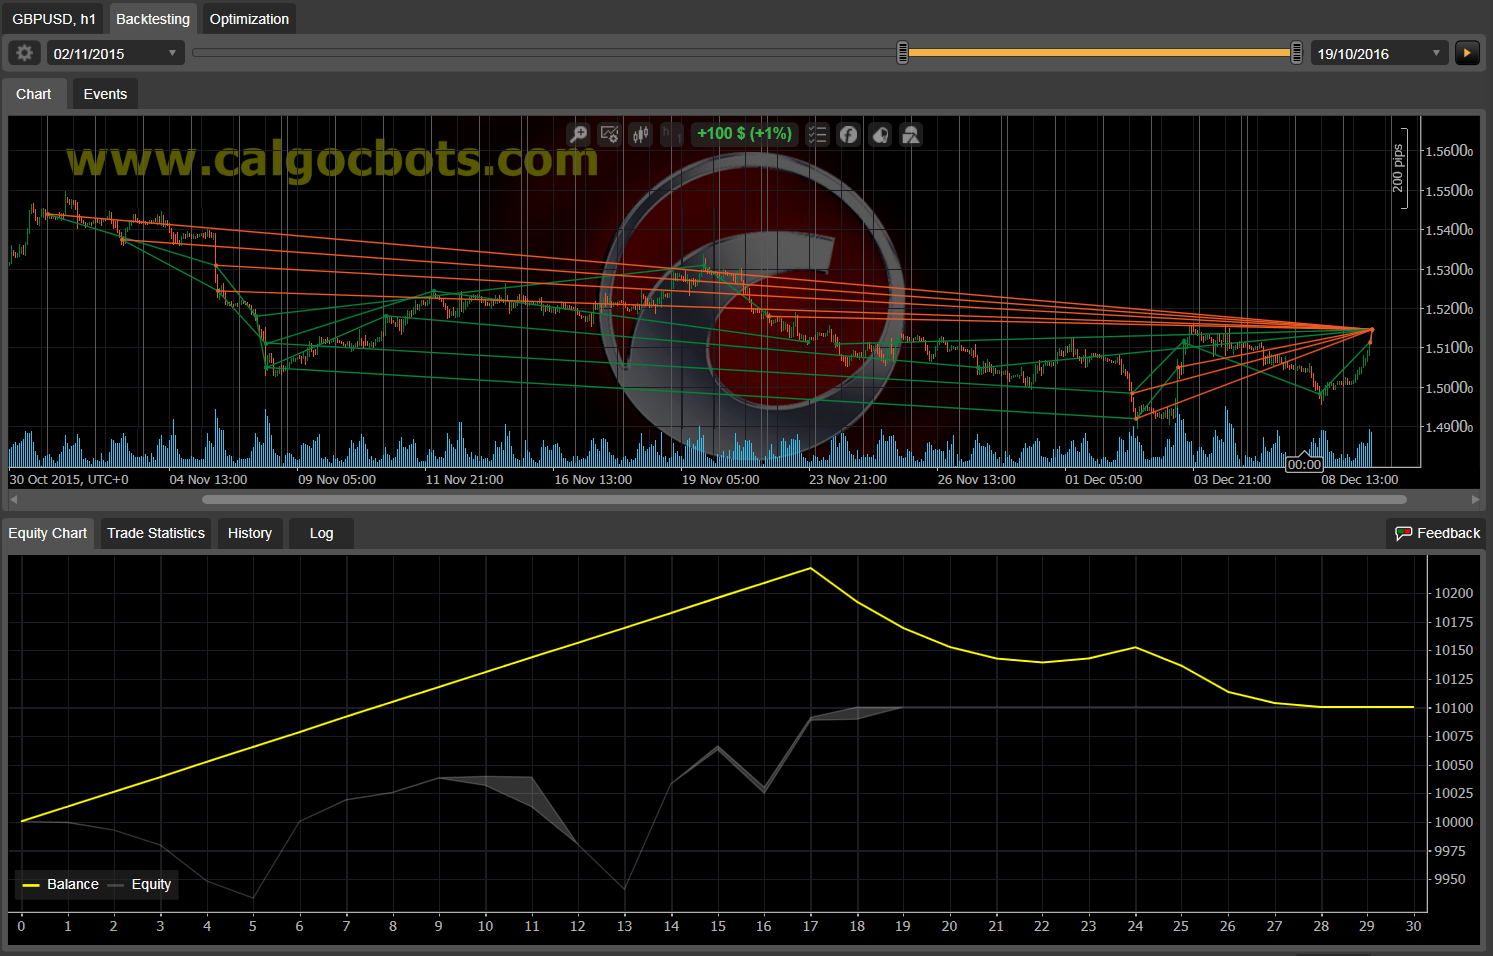 Dual Grid Hedge GBP USD 1h cAlgo cBots cTrader 1k 100 50 100 - 04